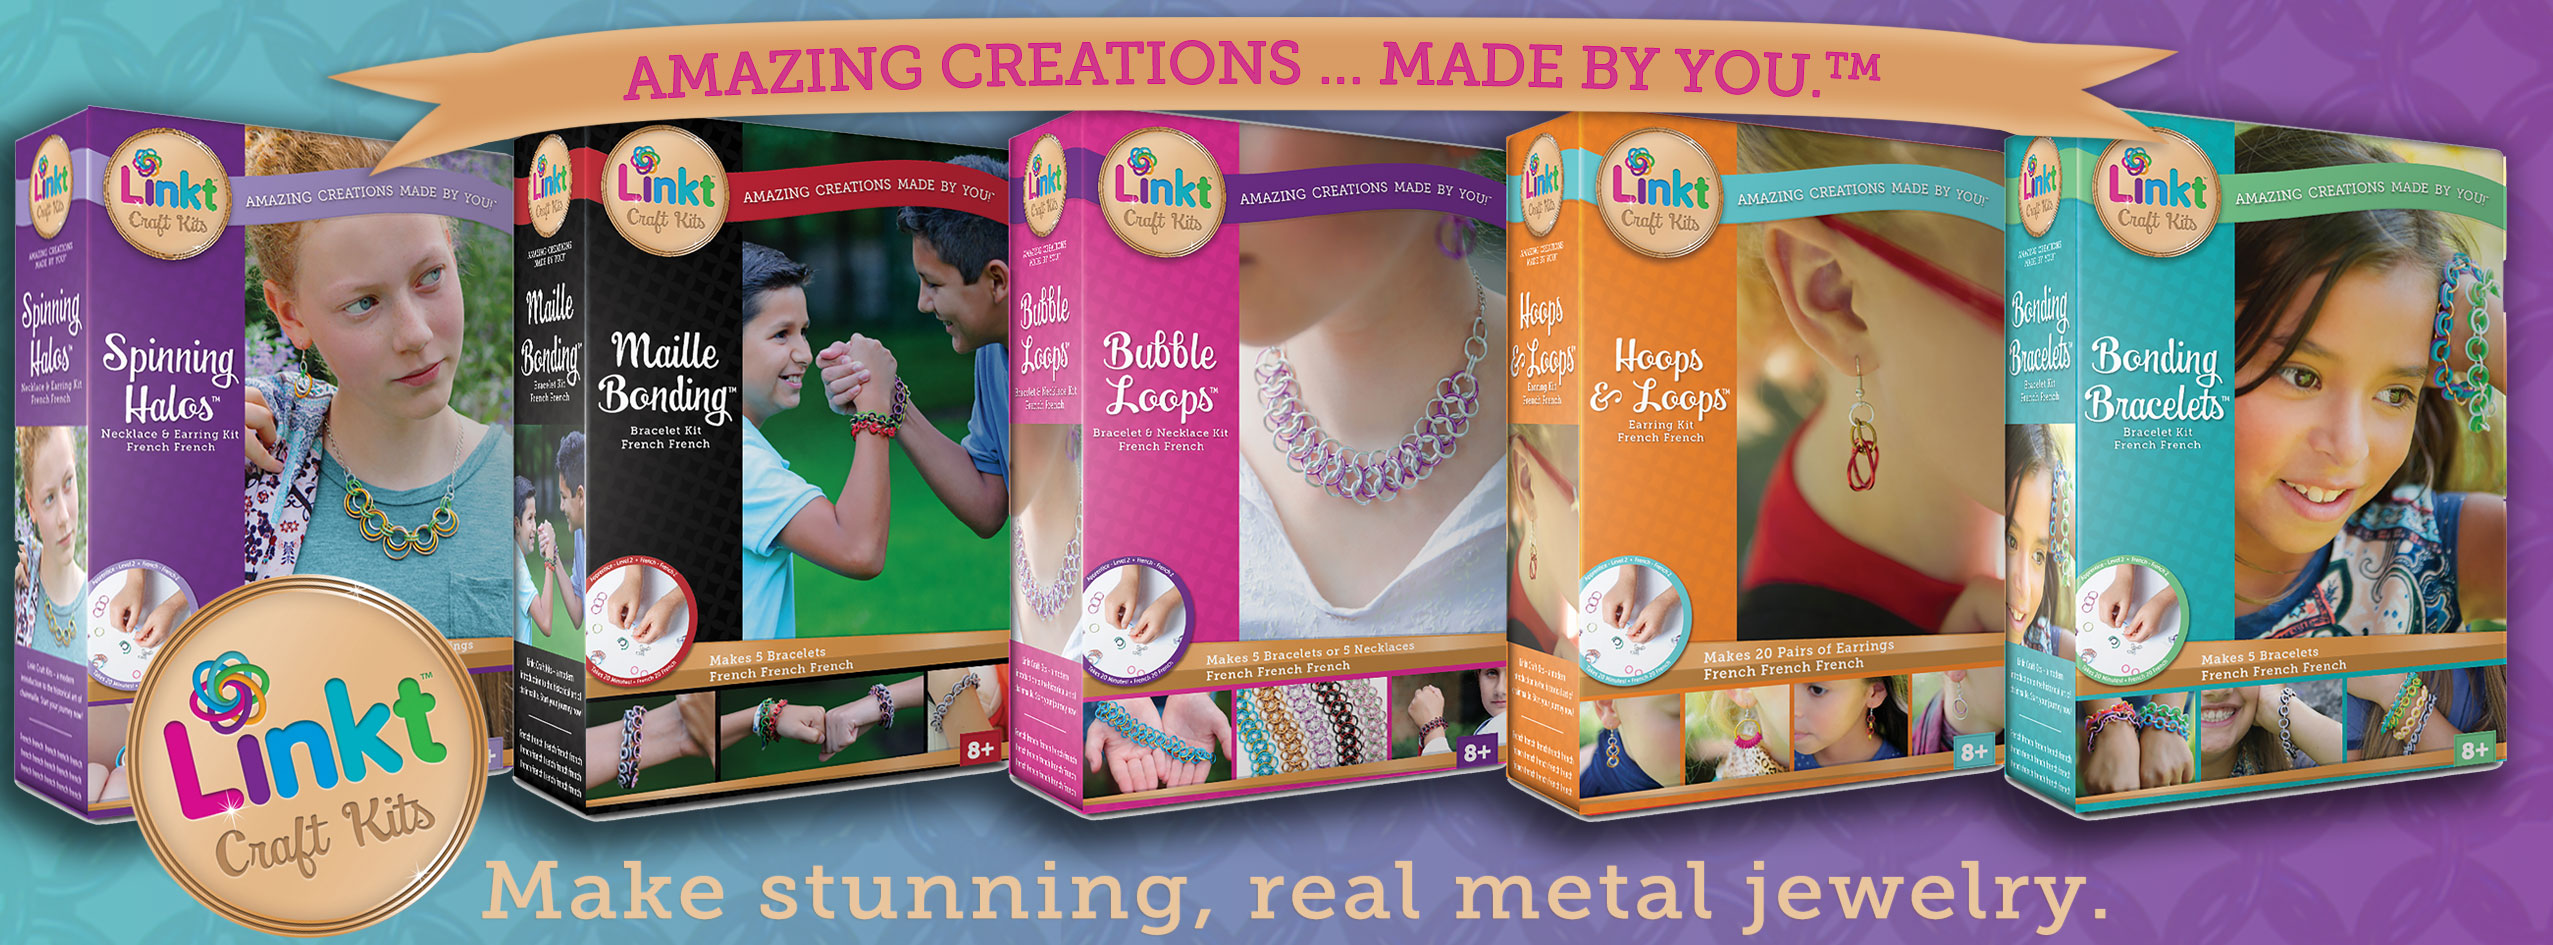 Linkt Craft Kits boxes